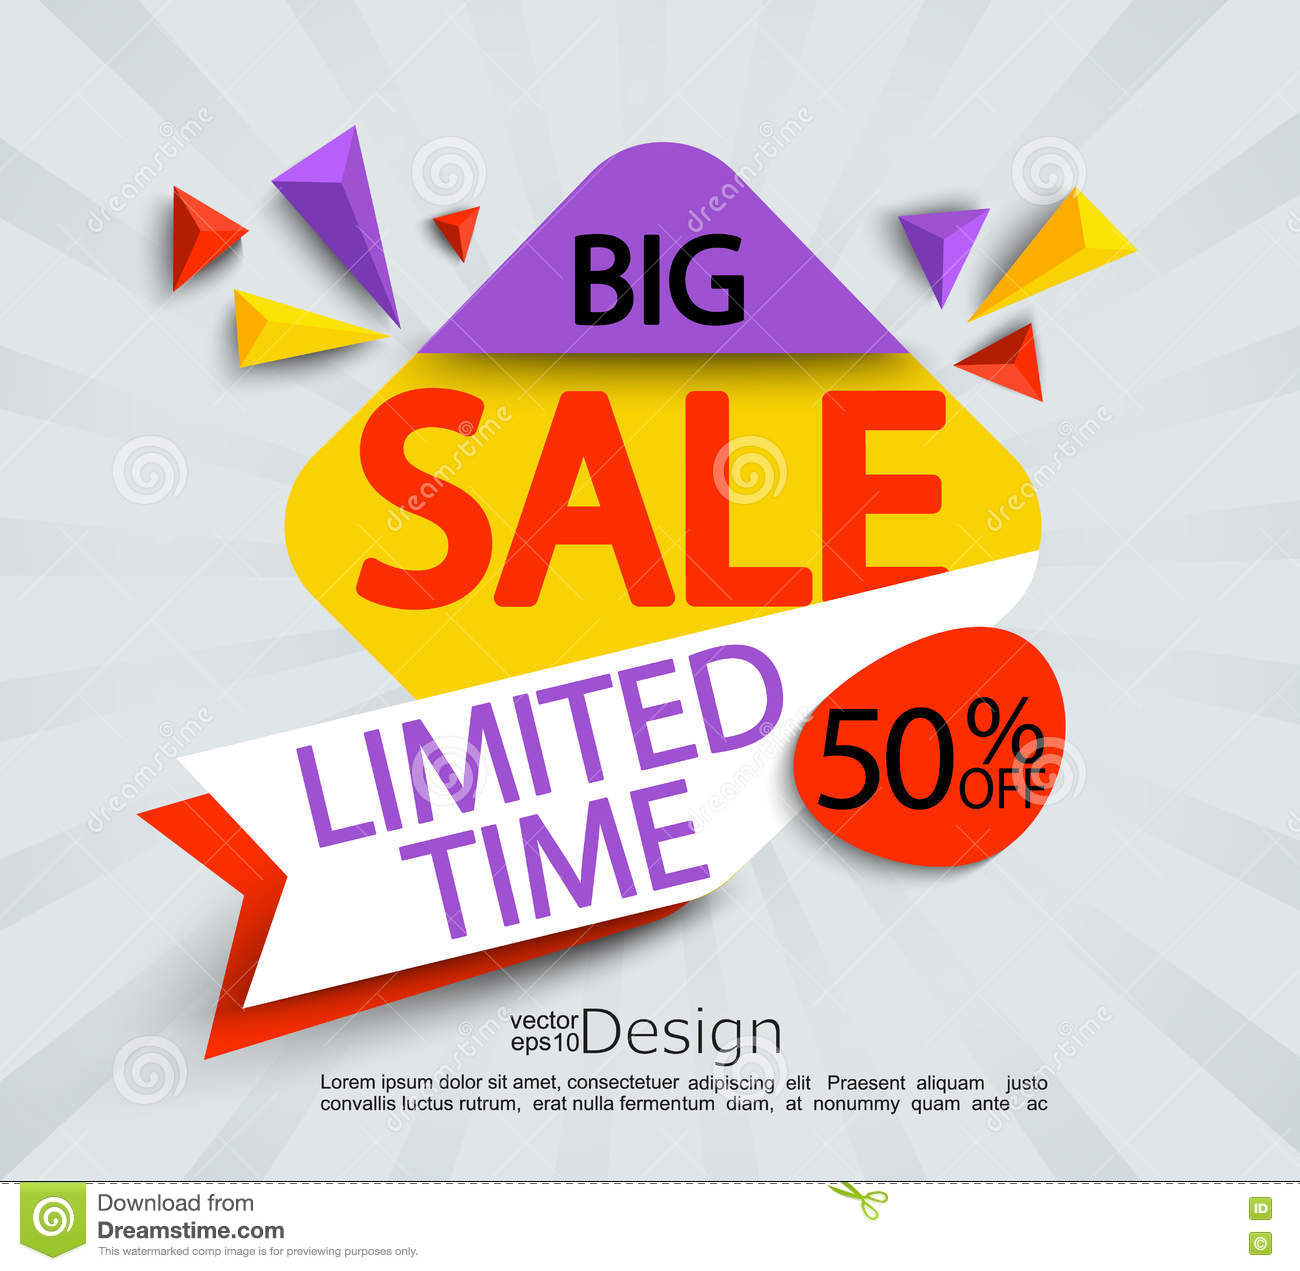 100+ Nice Origami Banner For Sales Discounts Vector Free ... - photo#25